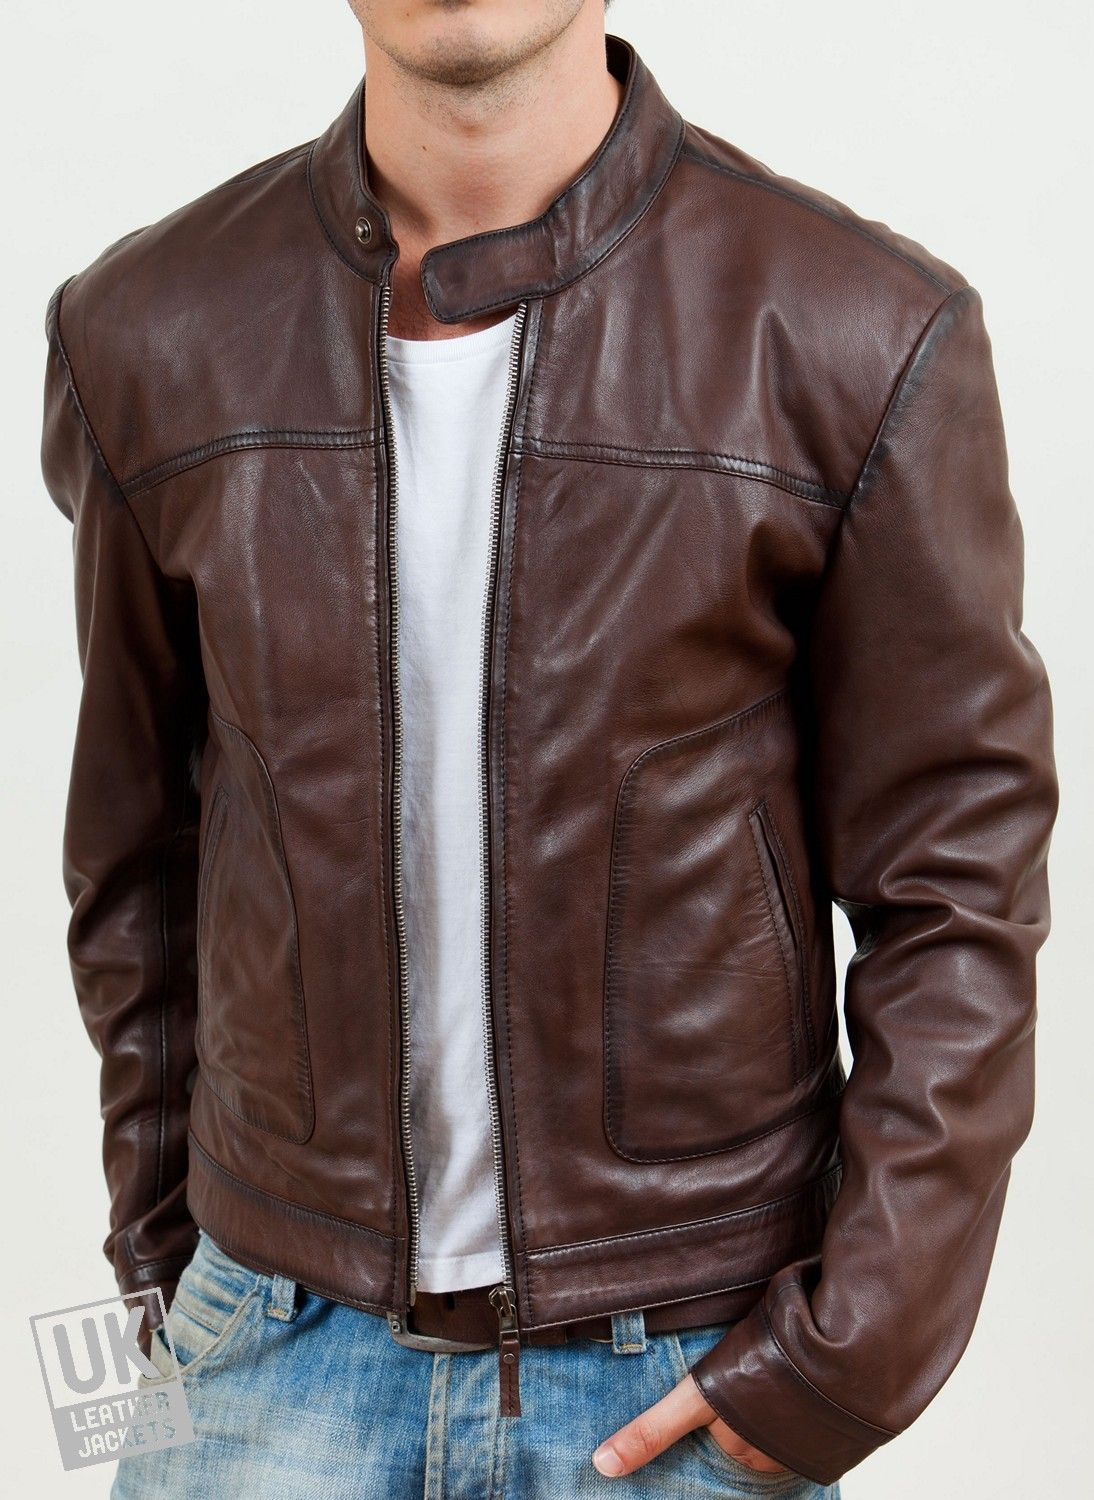 Armani Jeans Mens Leather jacket | Men&39s Wear | Pinterest | Men&39s